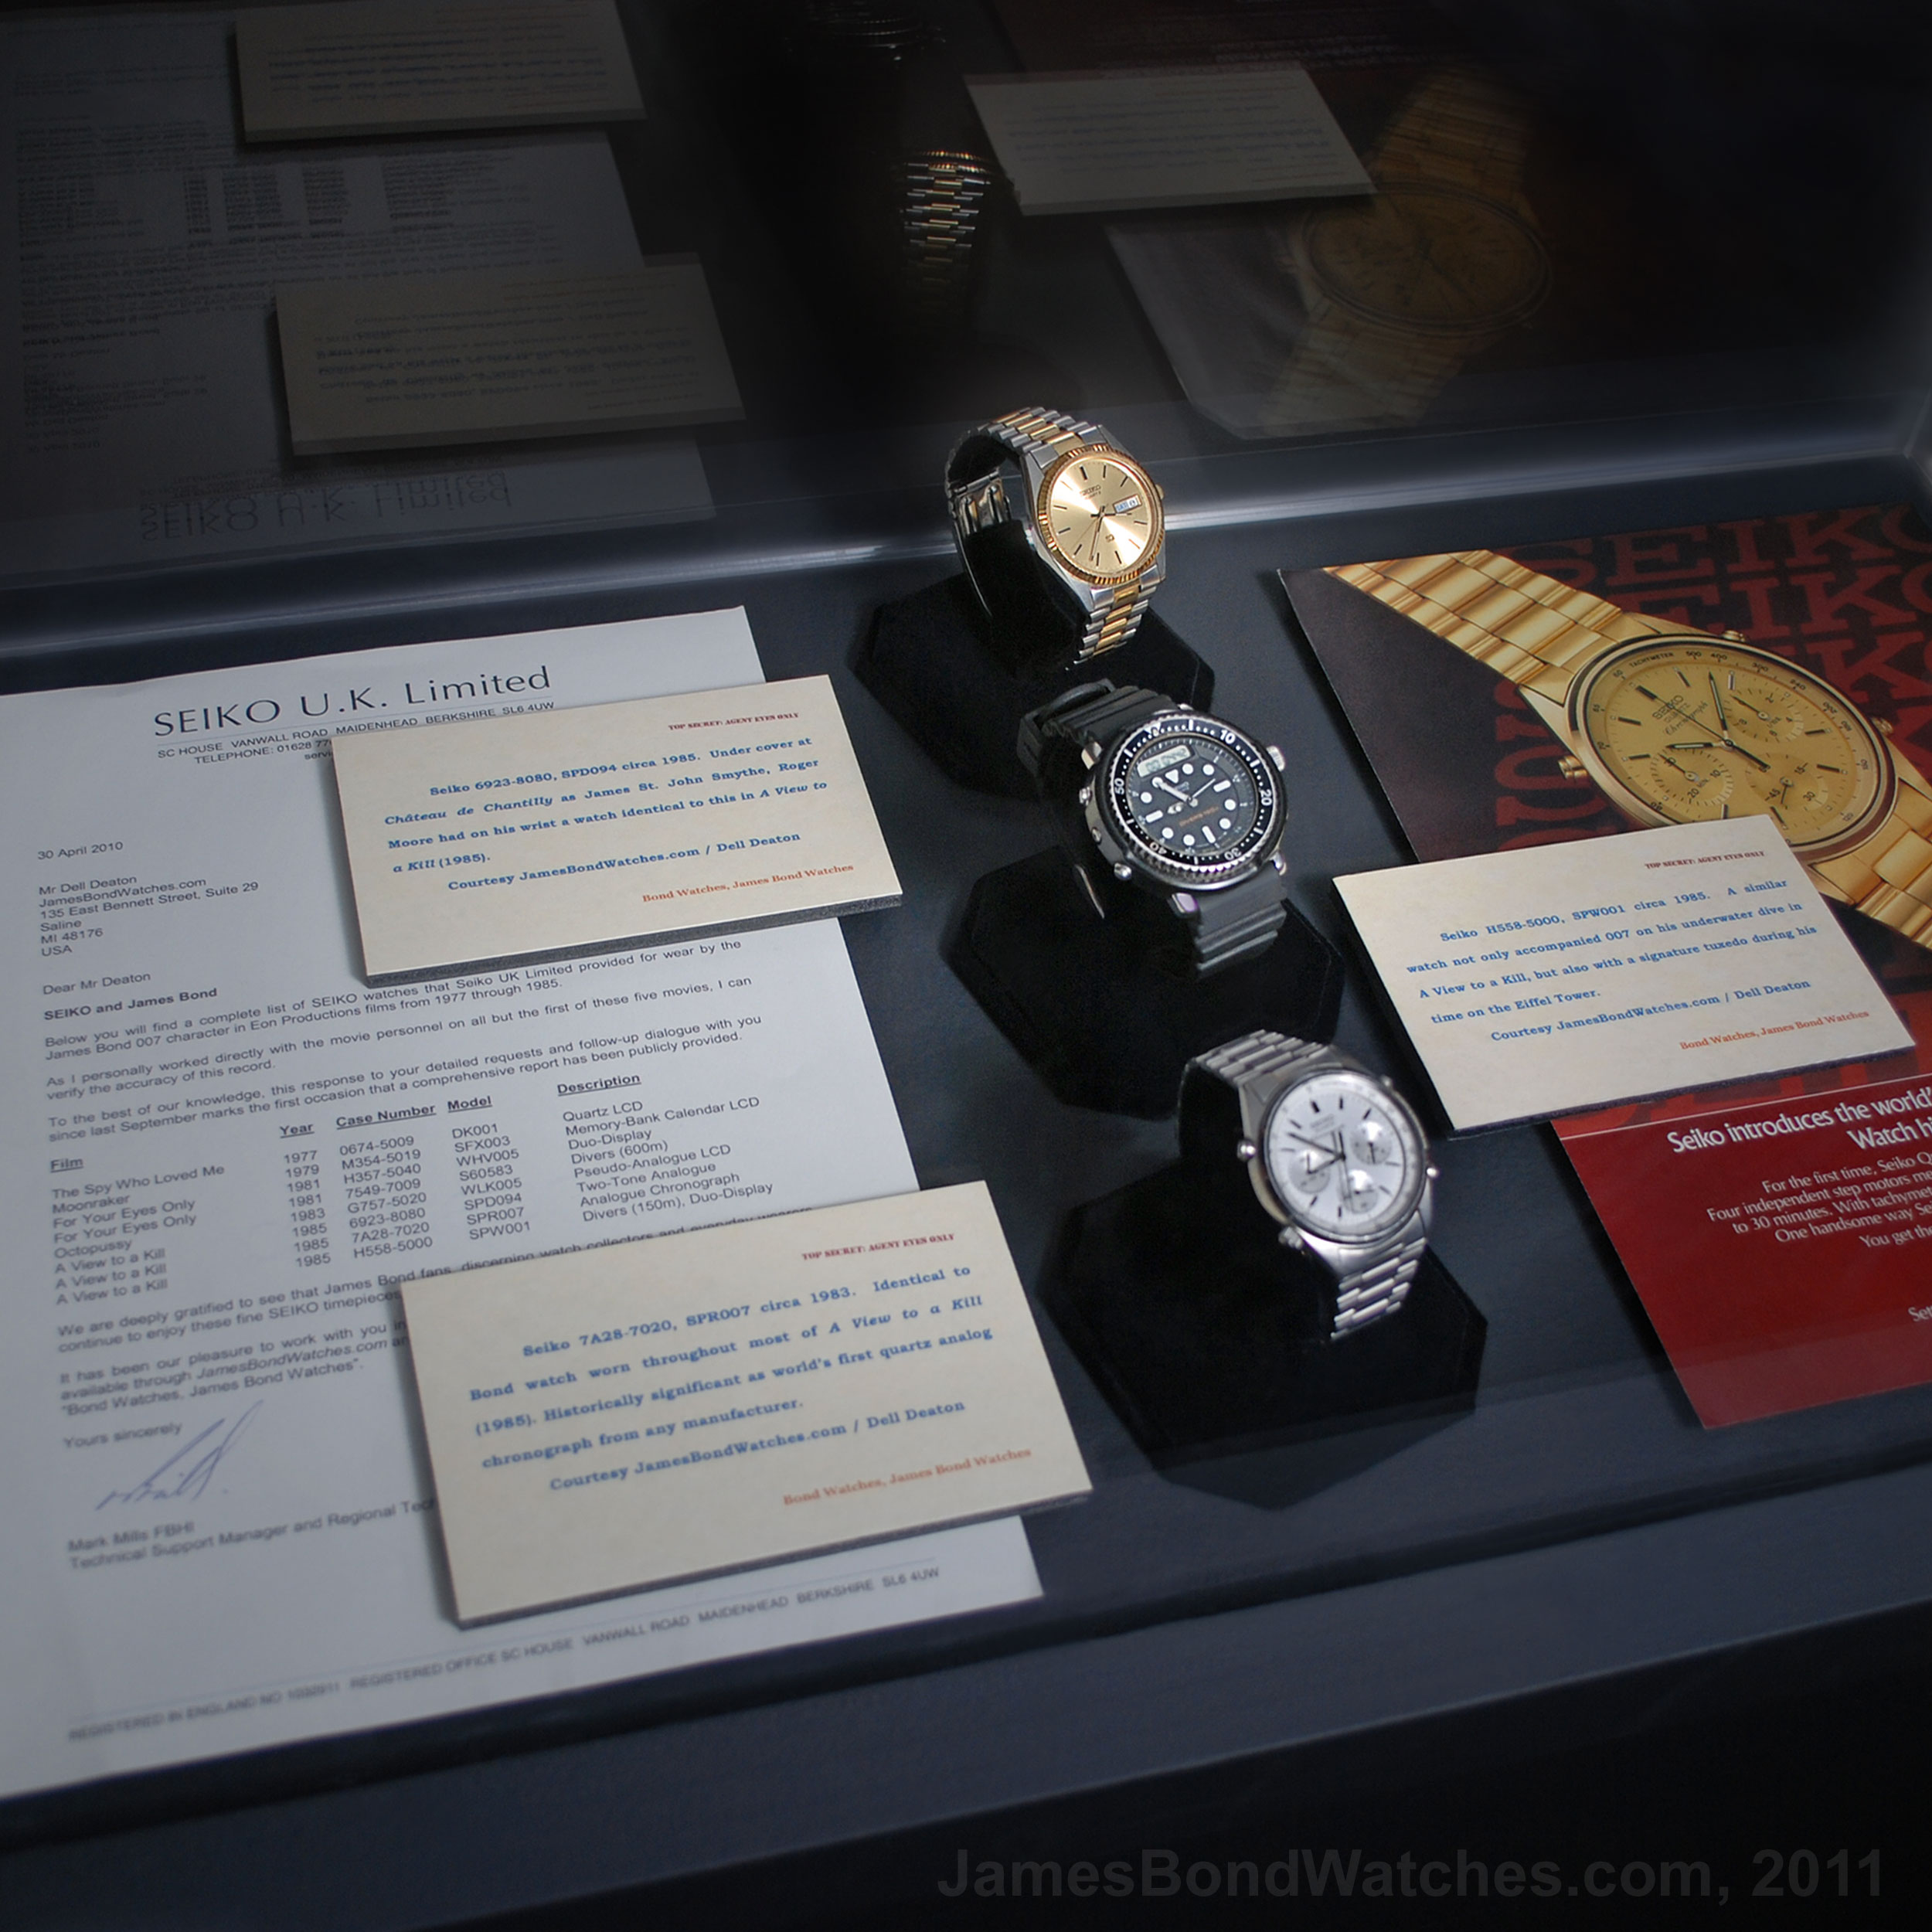 Public display of original documentation from Seiko UK exclusively to Dell Deaton: Identifying all watch models provided for EON Productions James Bond movies 1977-1985